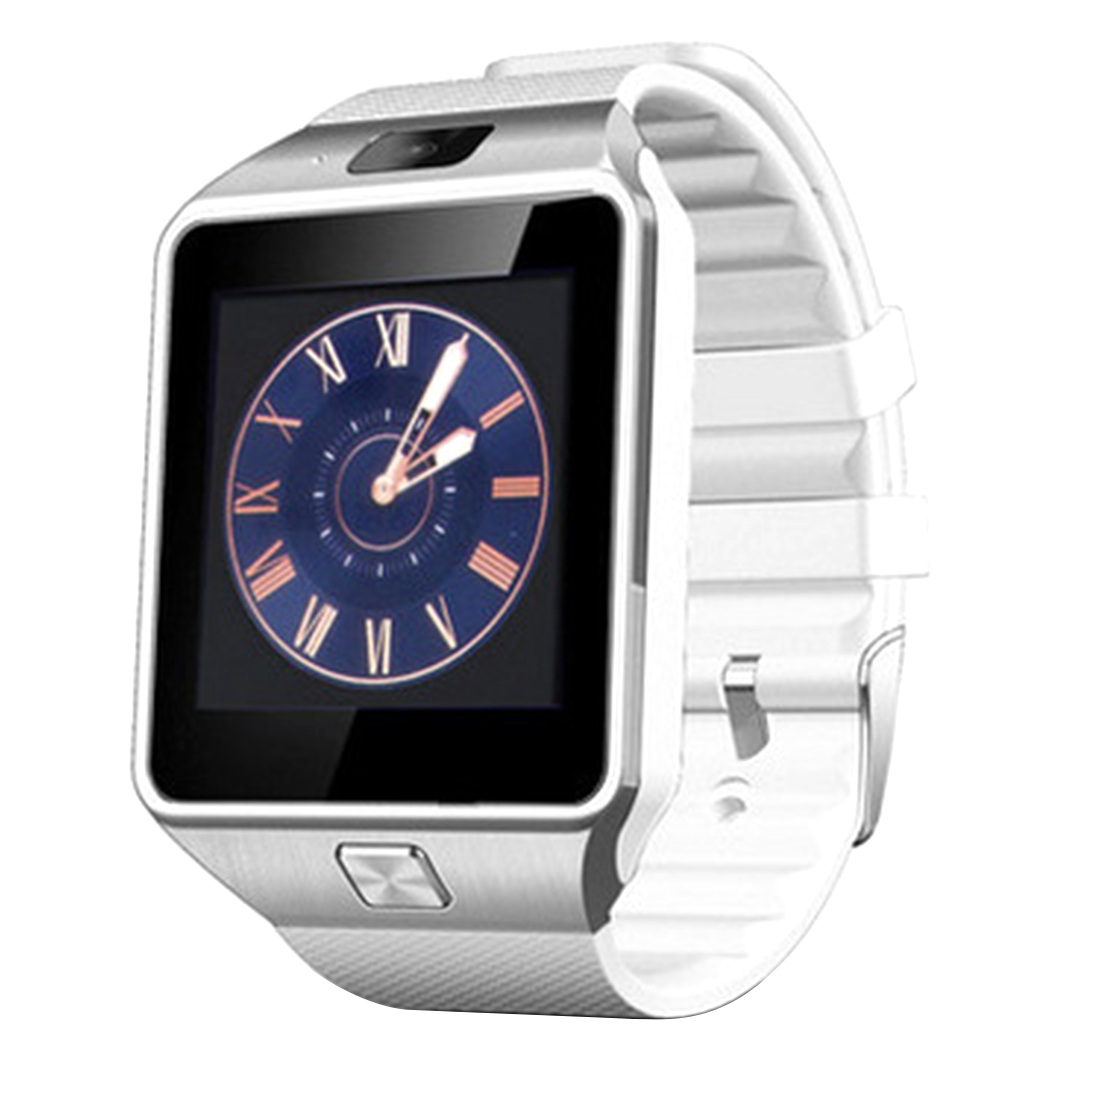 WristWatch Bluetooth Smart Watch Sport With Media Player Smartwatch For Android Smartphone